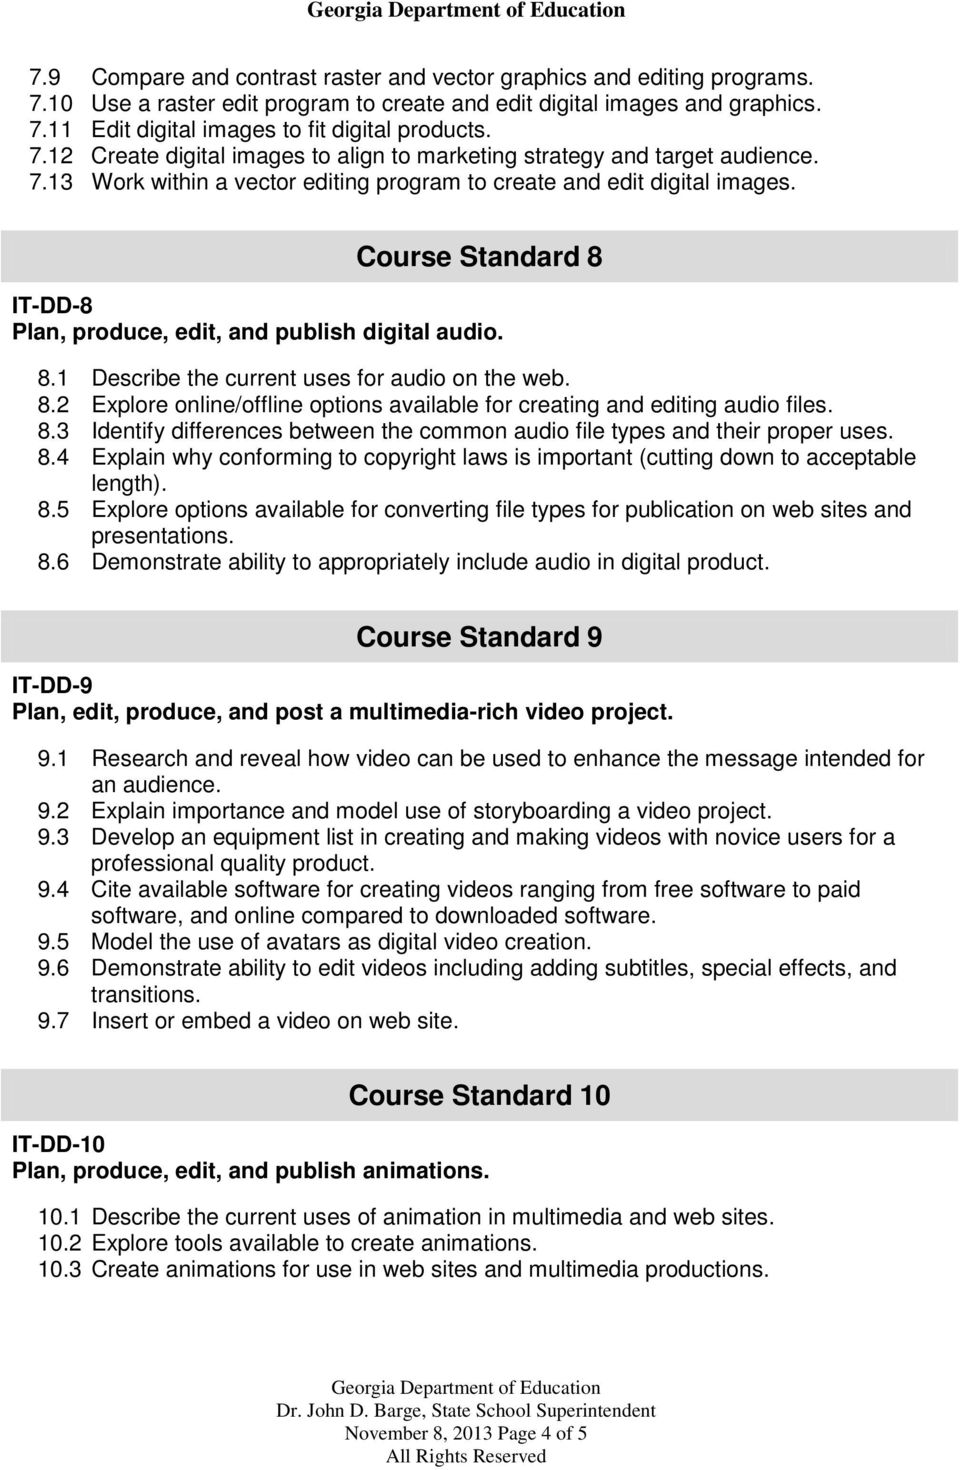 Course Standard 8 IT-DD-8 Plan, produce, edit, and publish digital audio. 8.1 Describe the current uses for audio on the web. 8.2 Explore online/offline options available for creating and editing audio files.